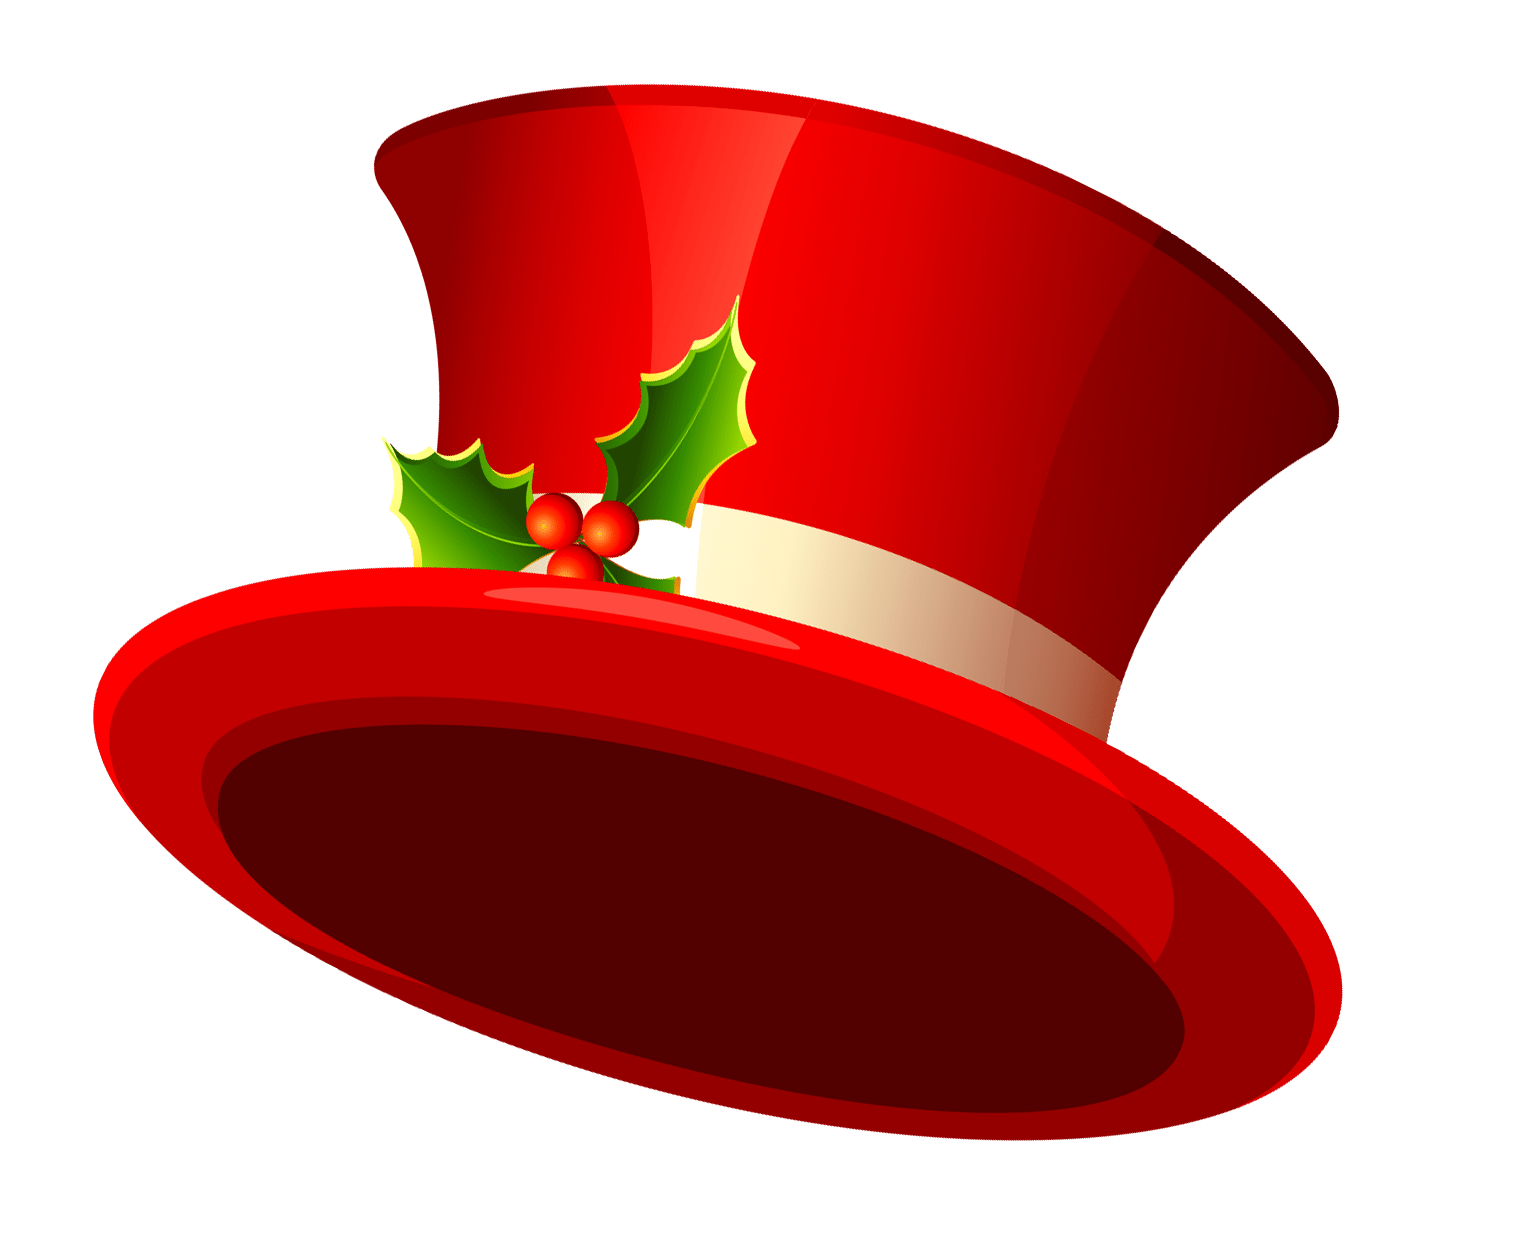 hight resolution of christmas top hat transparent clipart 0